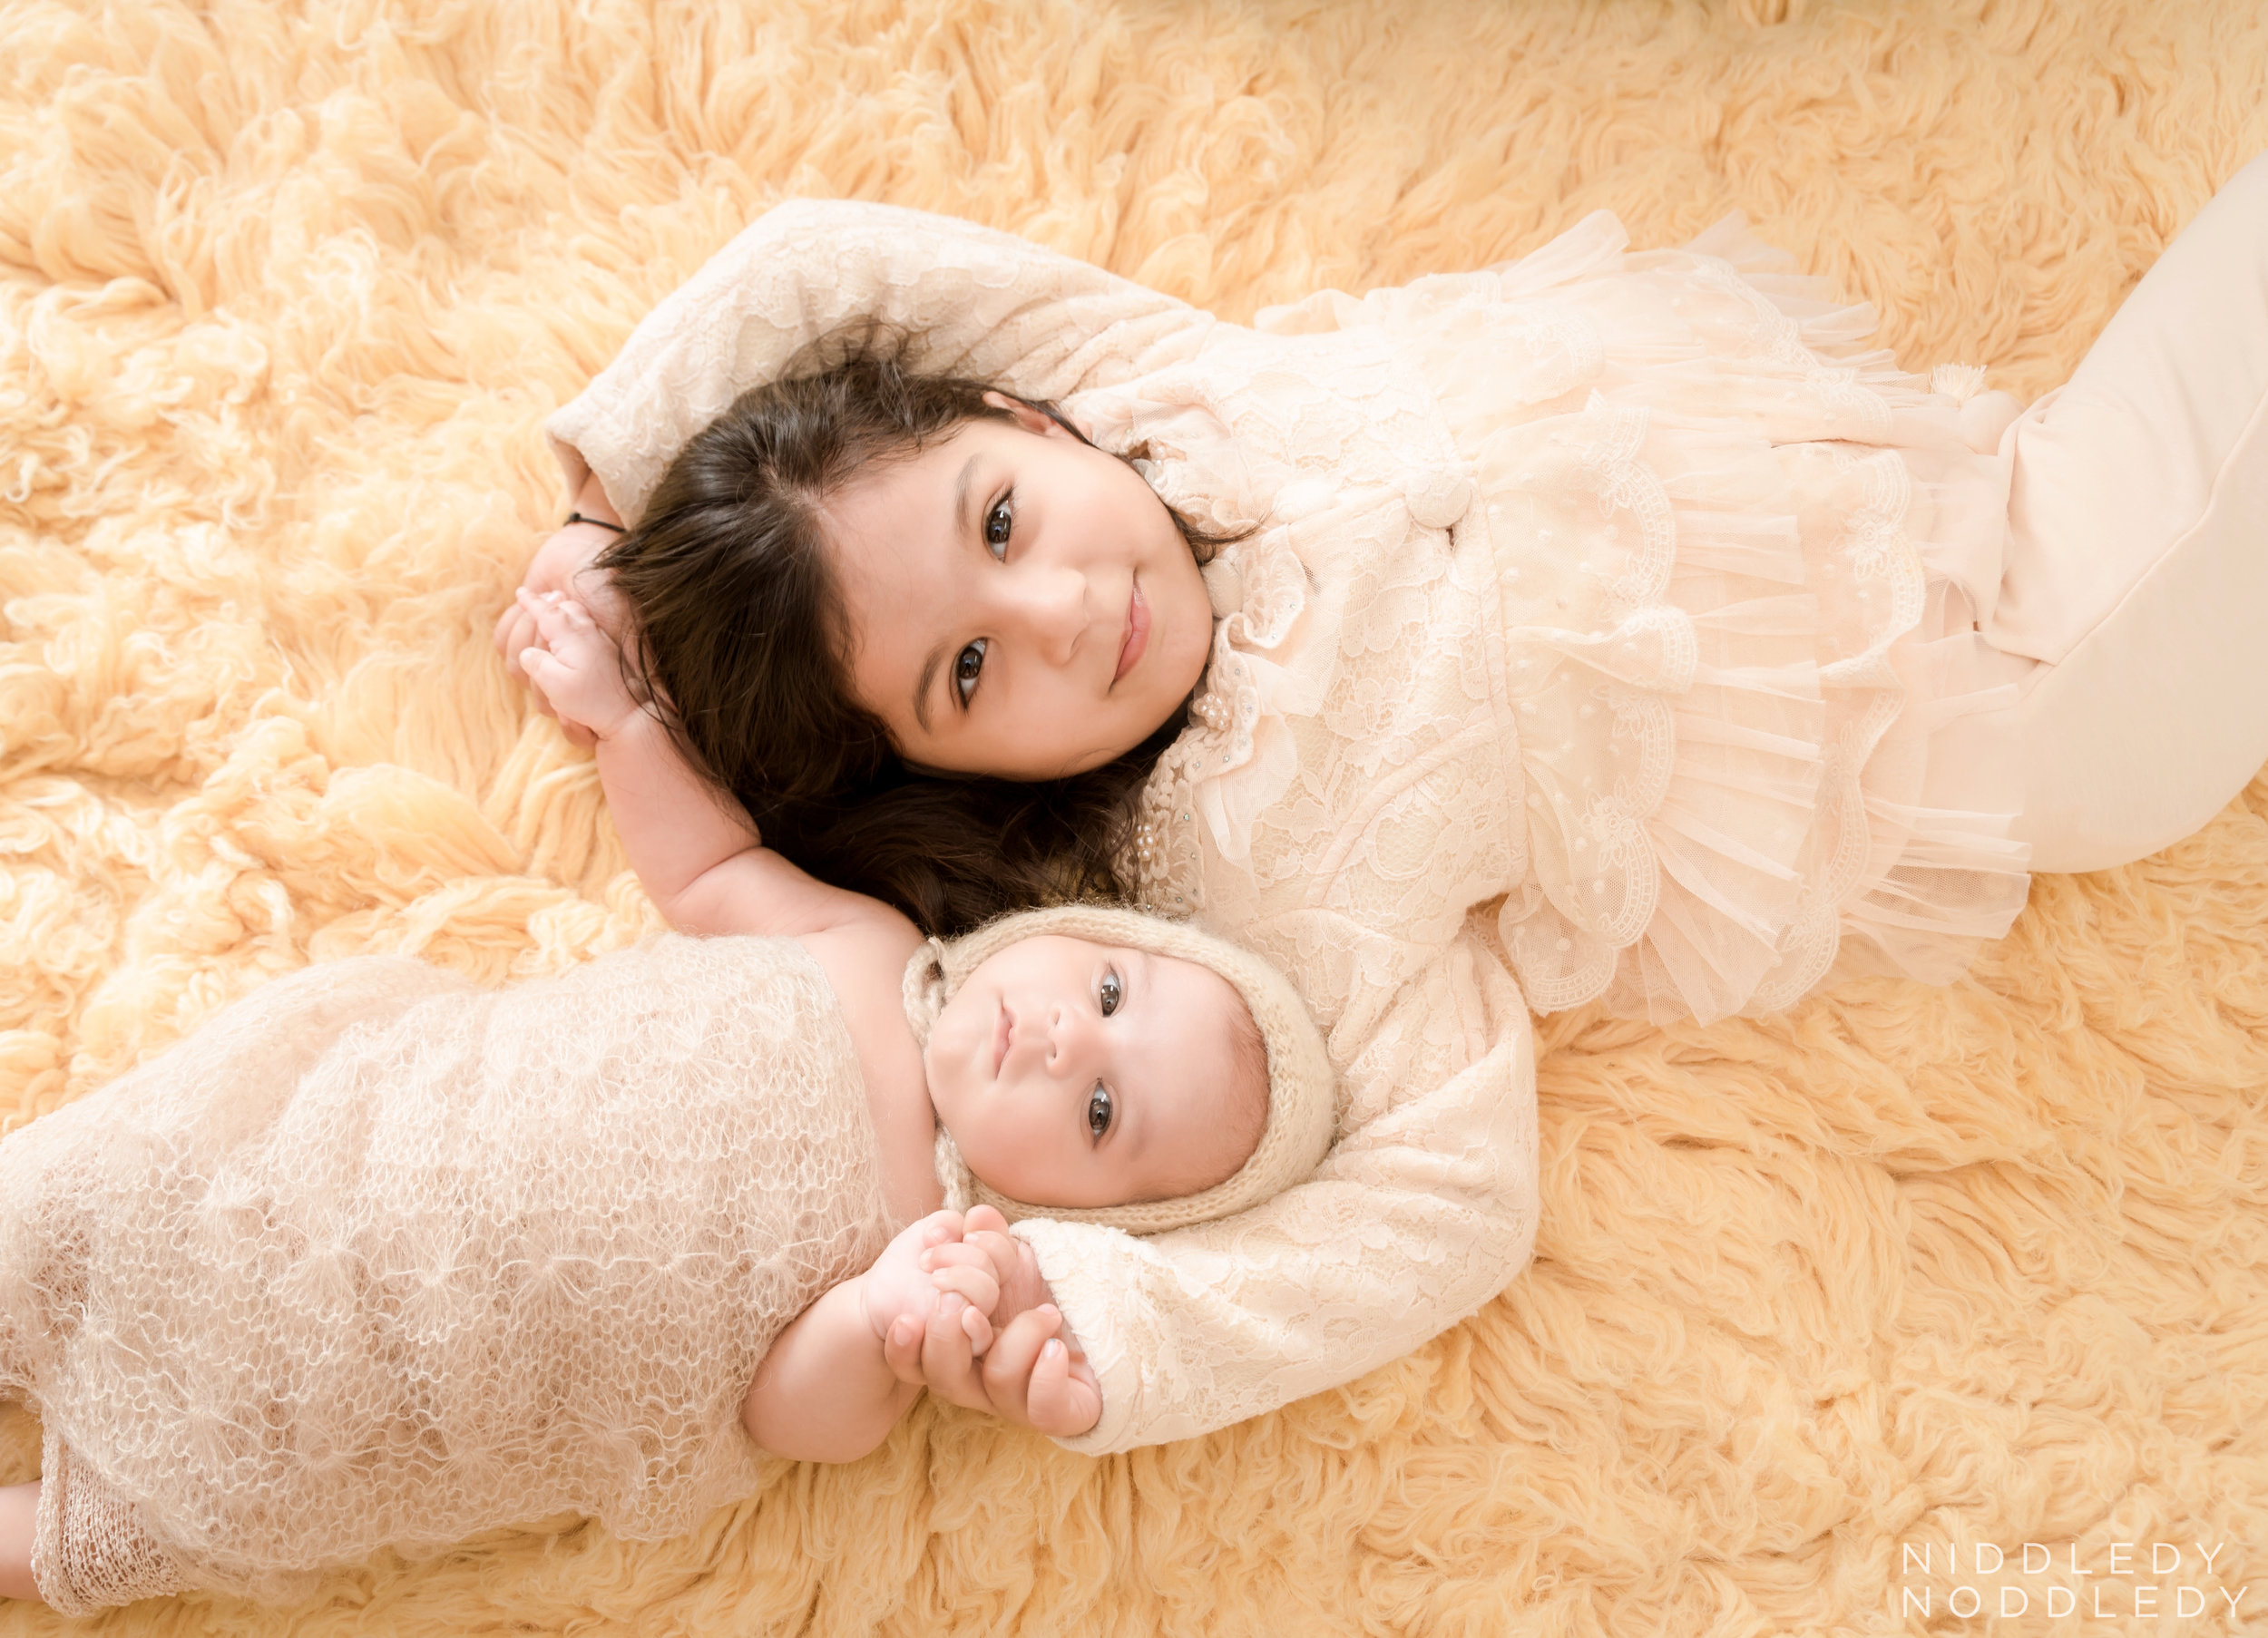 Ivyaan Newborn Photoshoot ❤ NiddledyNoddledy.com ~ Bumps to Babies Photography, Kolkata - 06.jpg